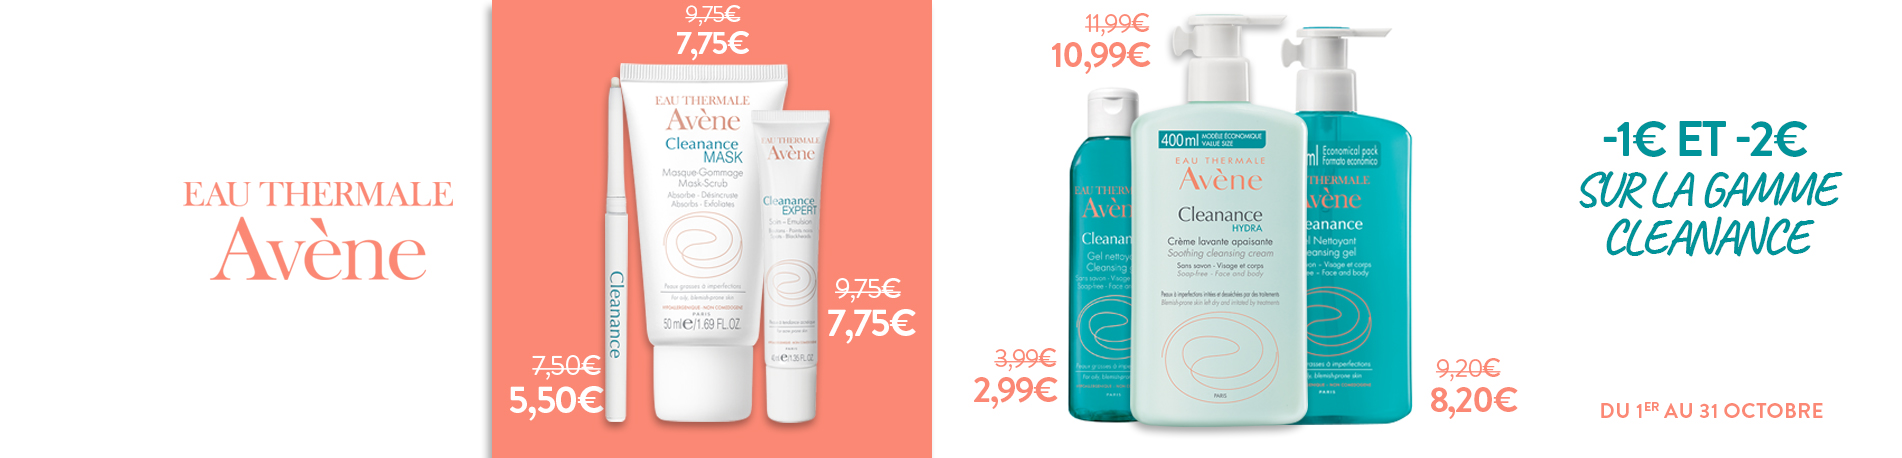 Promotion Avène Cleanance